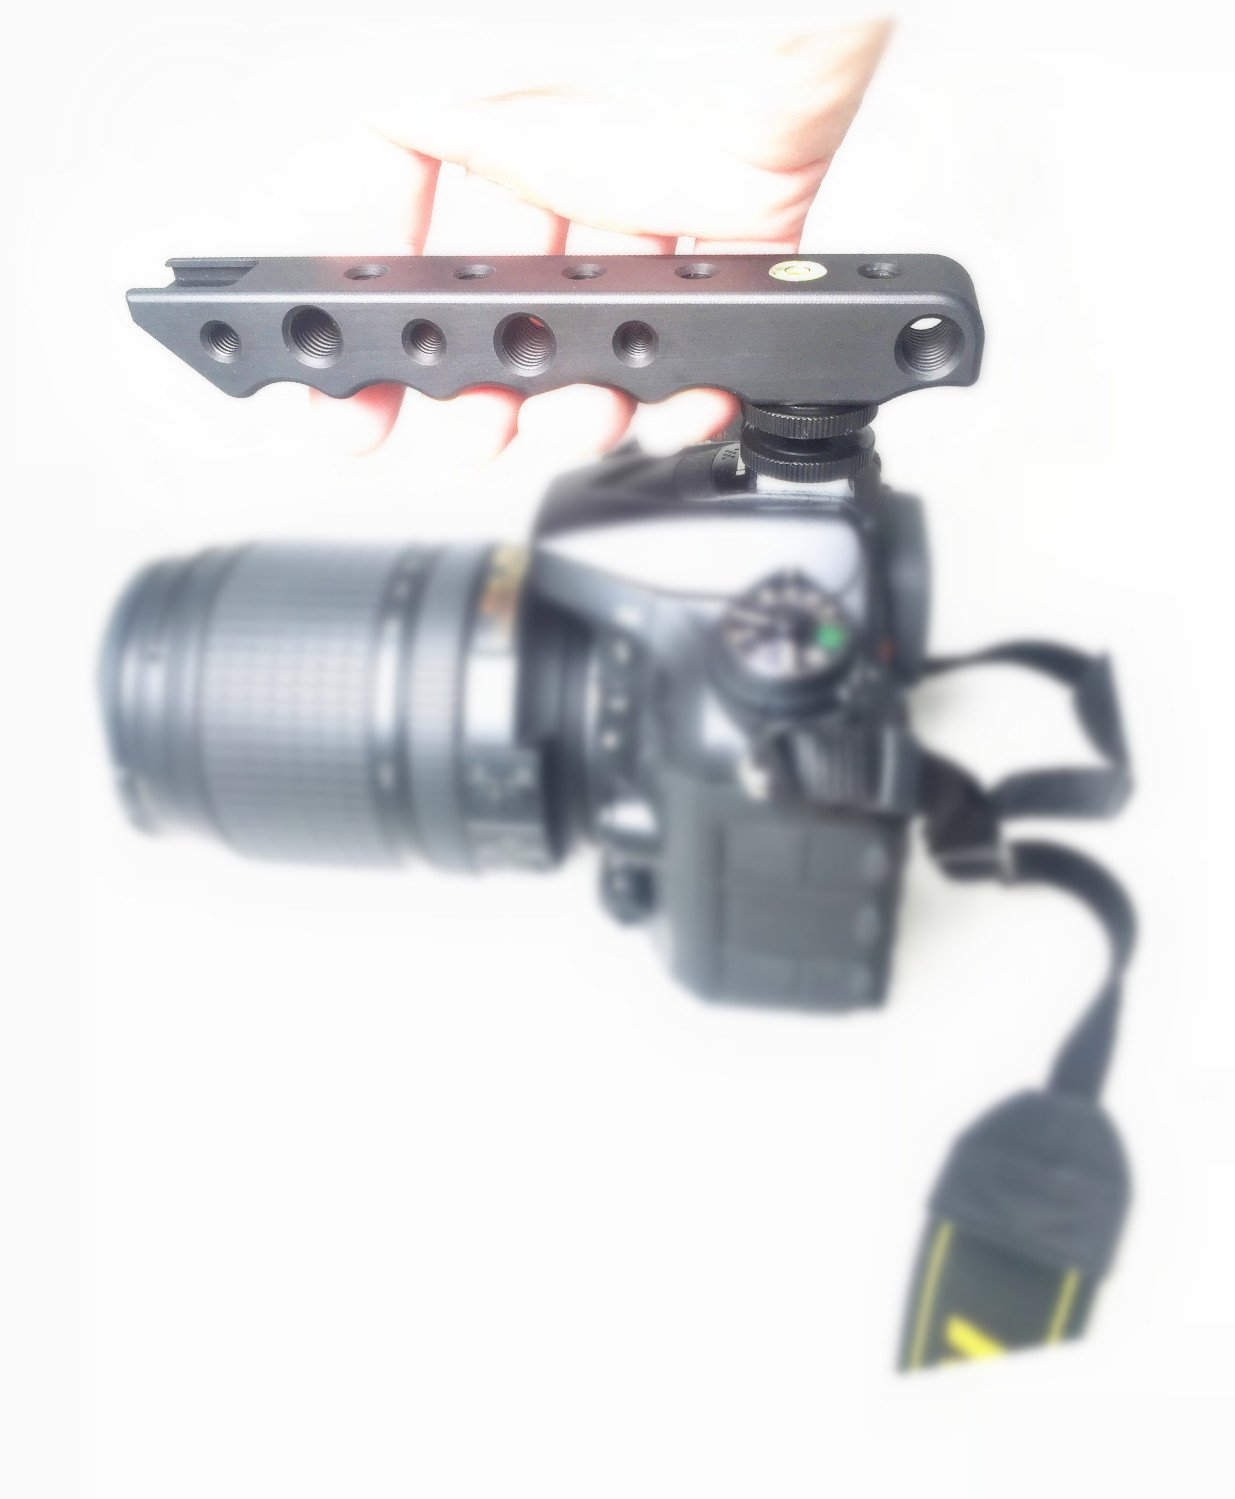 Riqiorod Video Stabilizing Top Handle & Cold Shoe Extender for Canon EOS, Nikon, Olympus & Pentax DSLR Cameras Video Light Camera Monitor